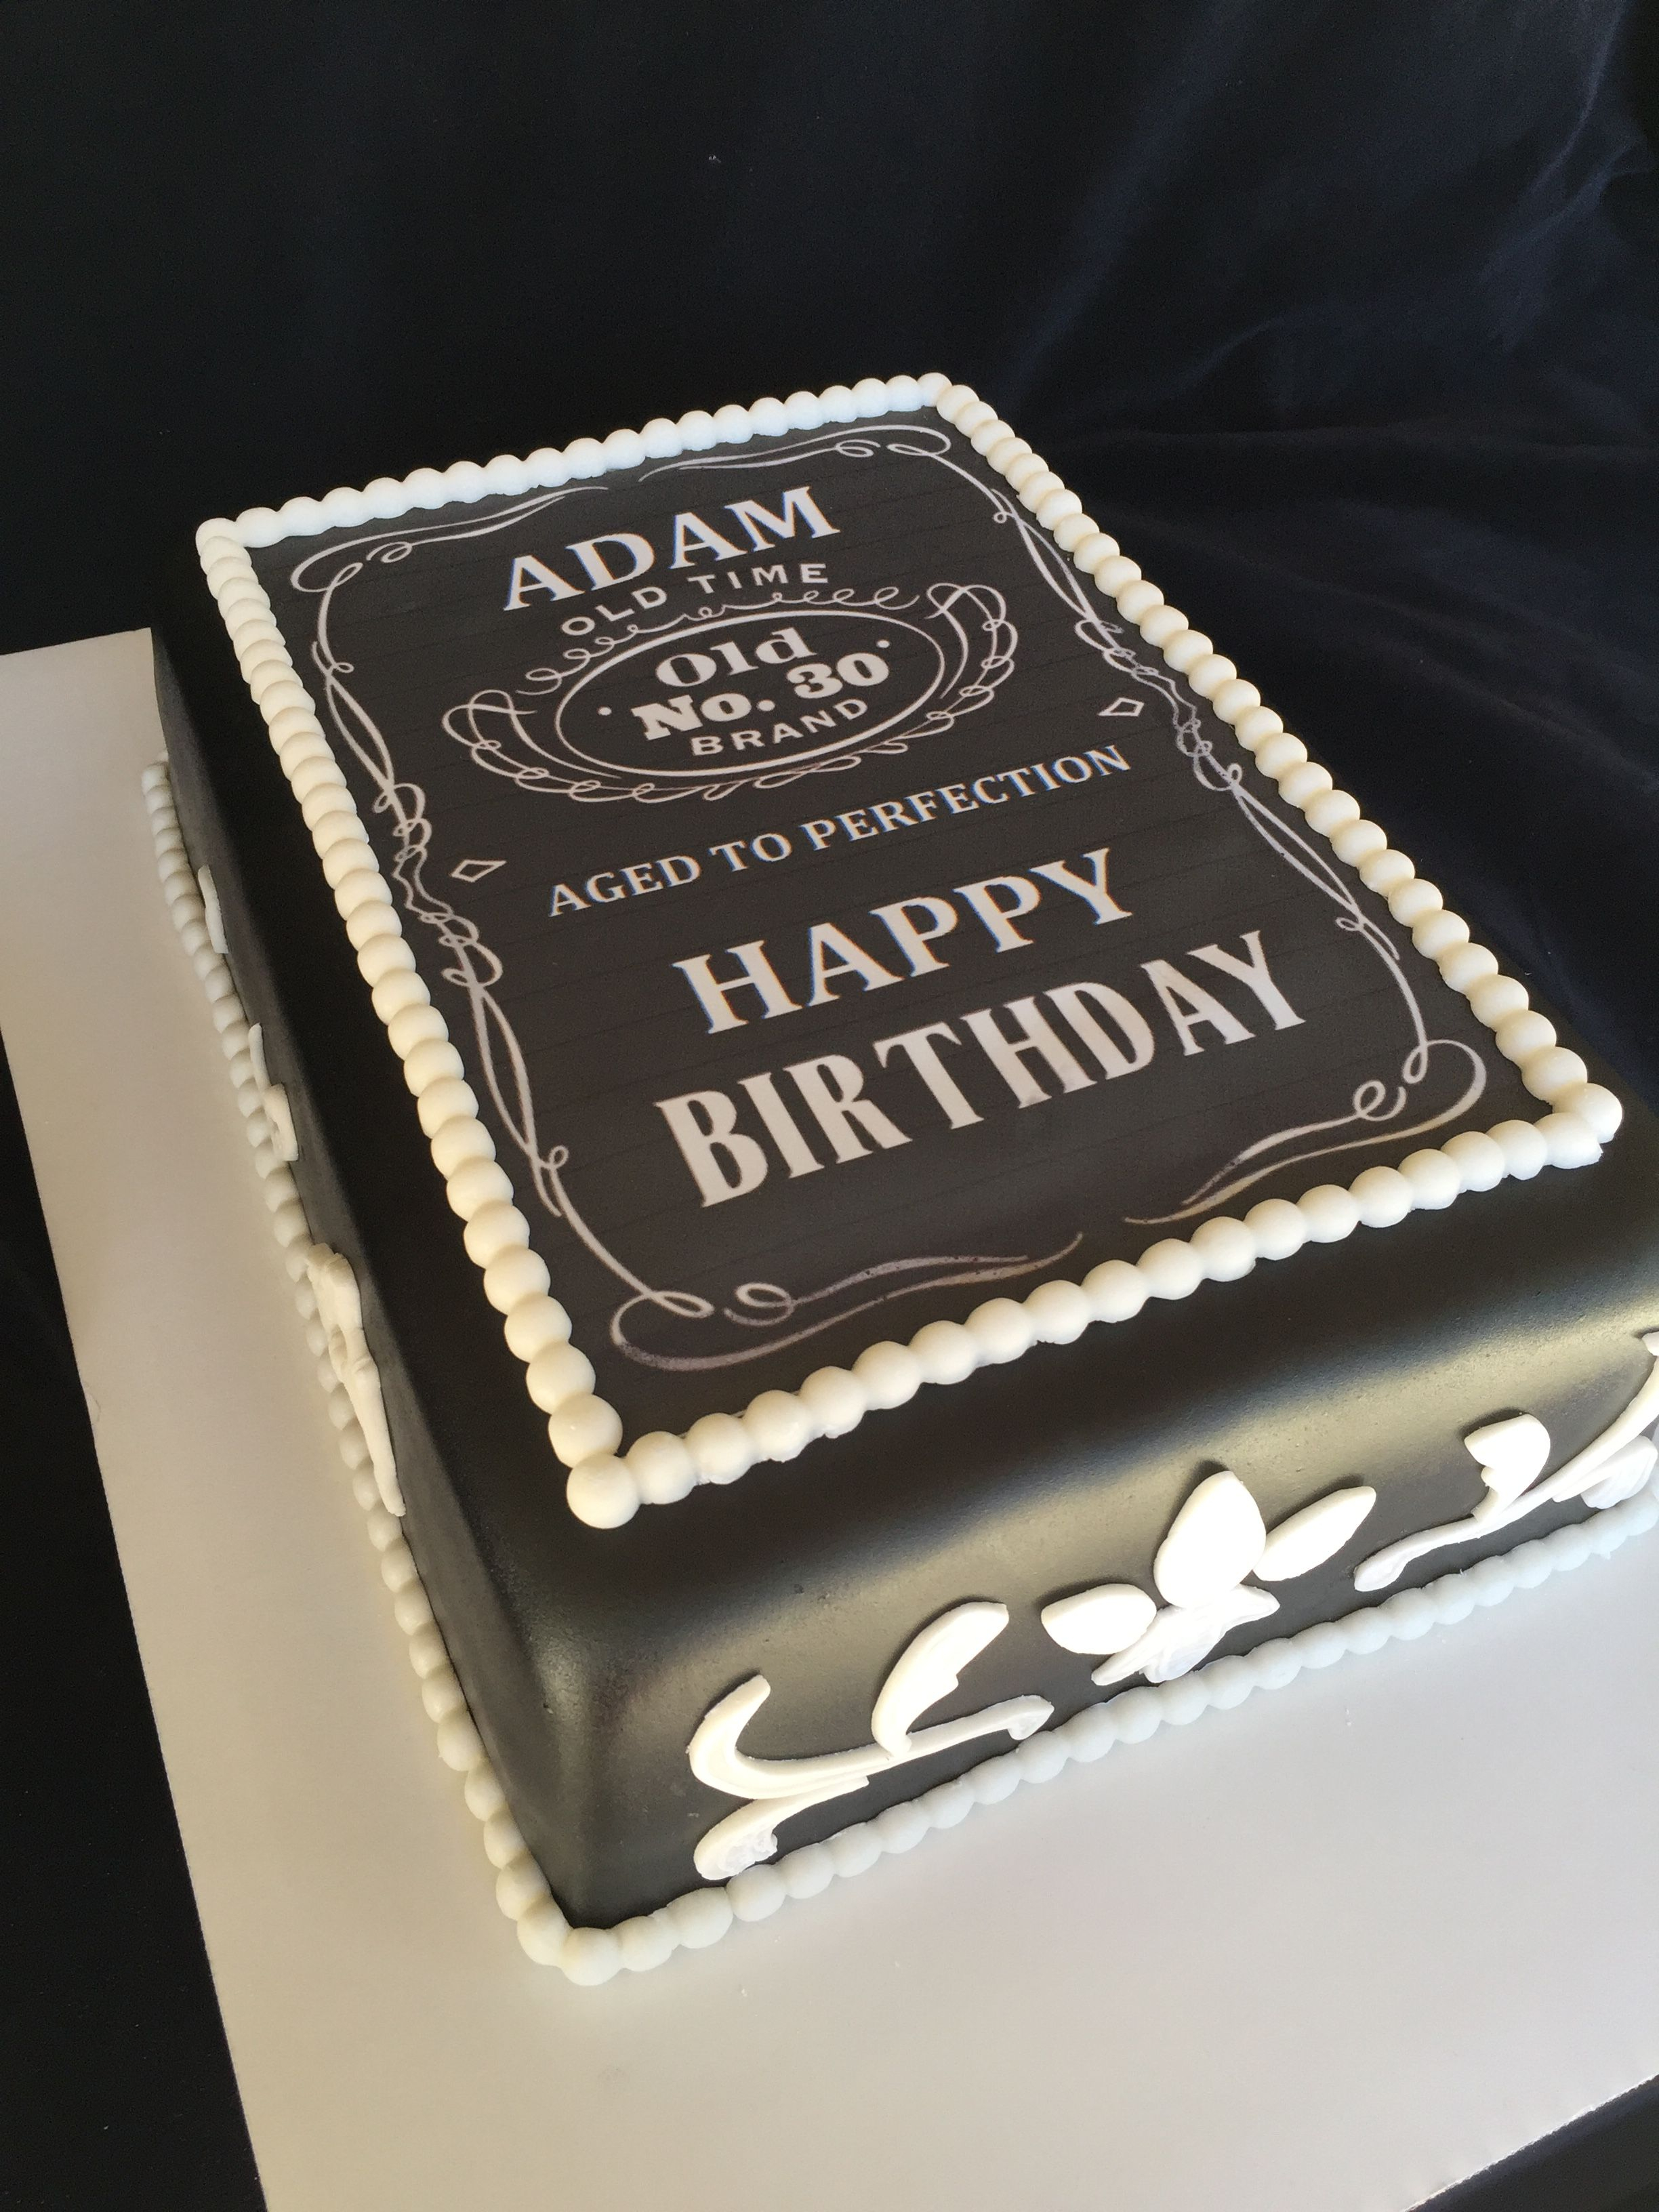 Happy Birthday Cakes For Him Jack Daniels Inspired Cake Delicious Recipes Pinte